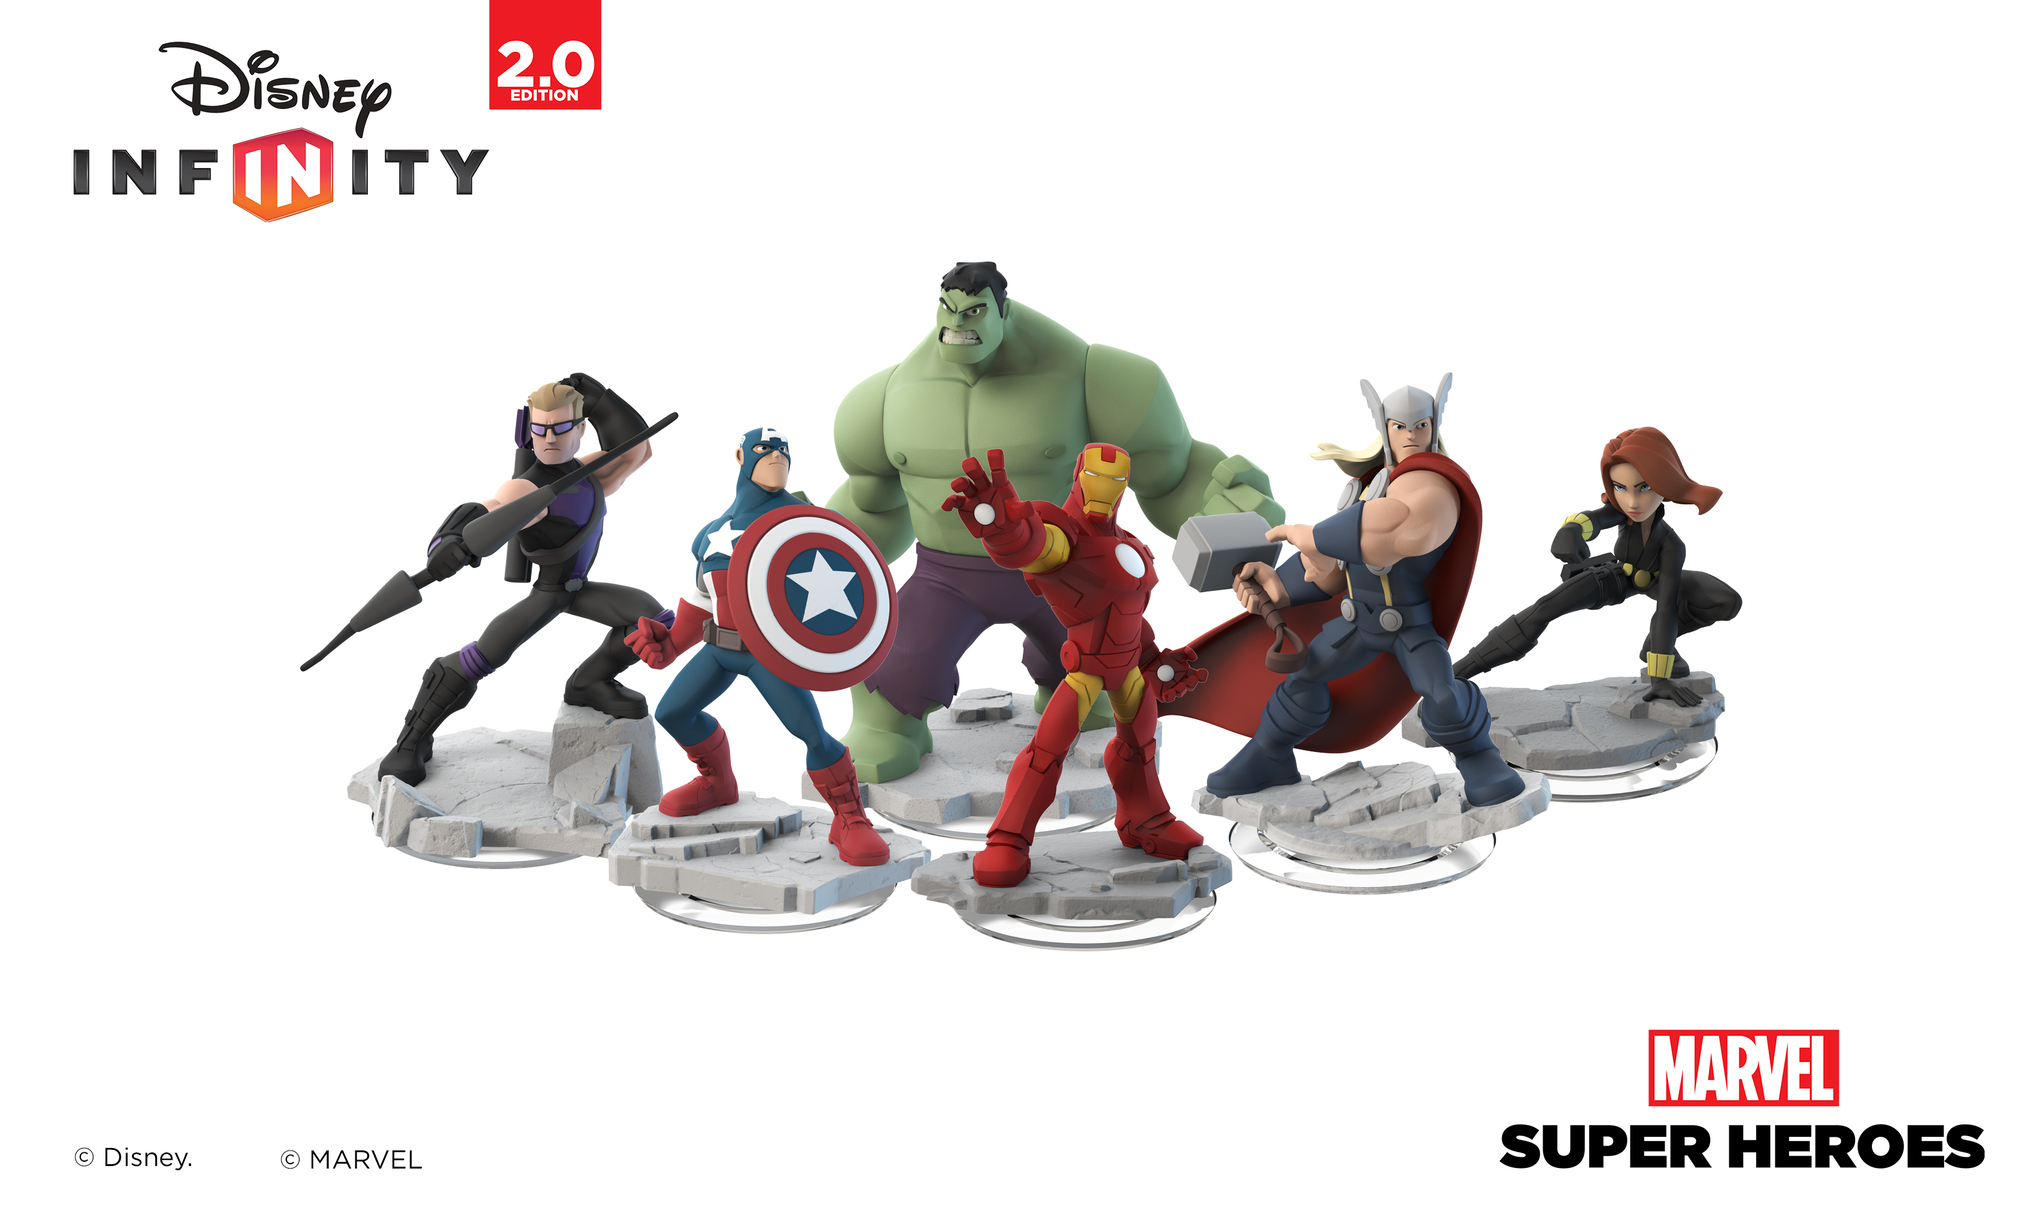 Marvel Characters Are Coming To Disney Infinity This